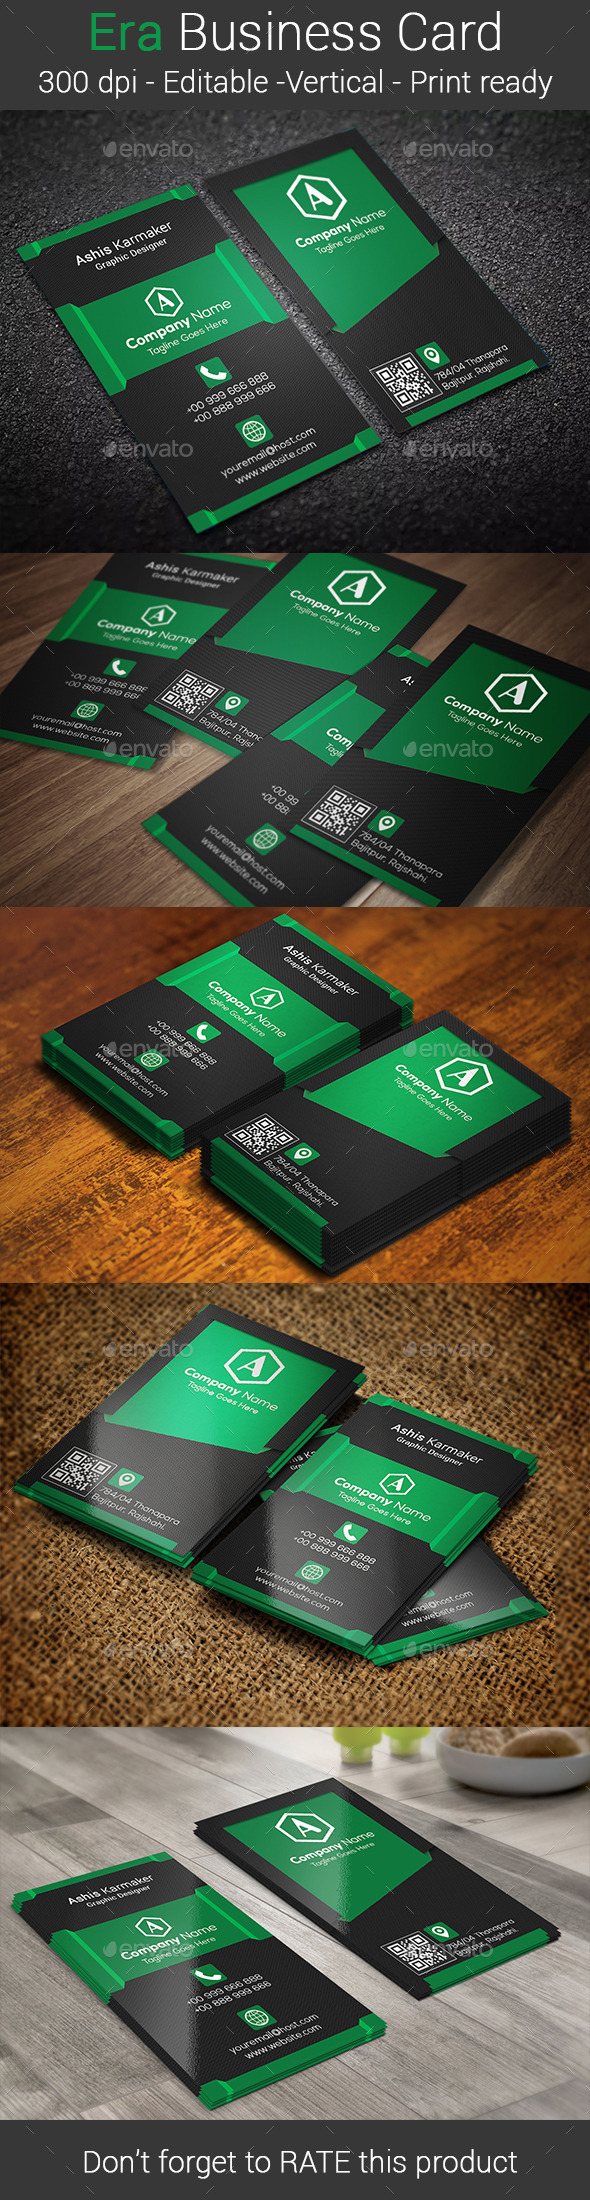 GraphicRiver Era Business Card 10913519